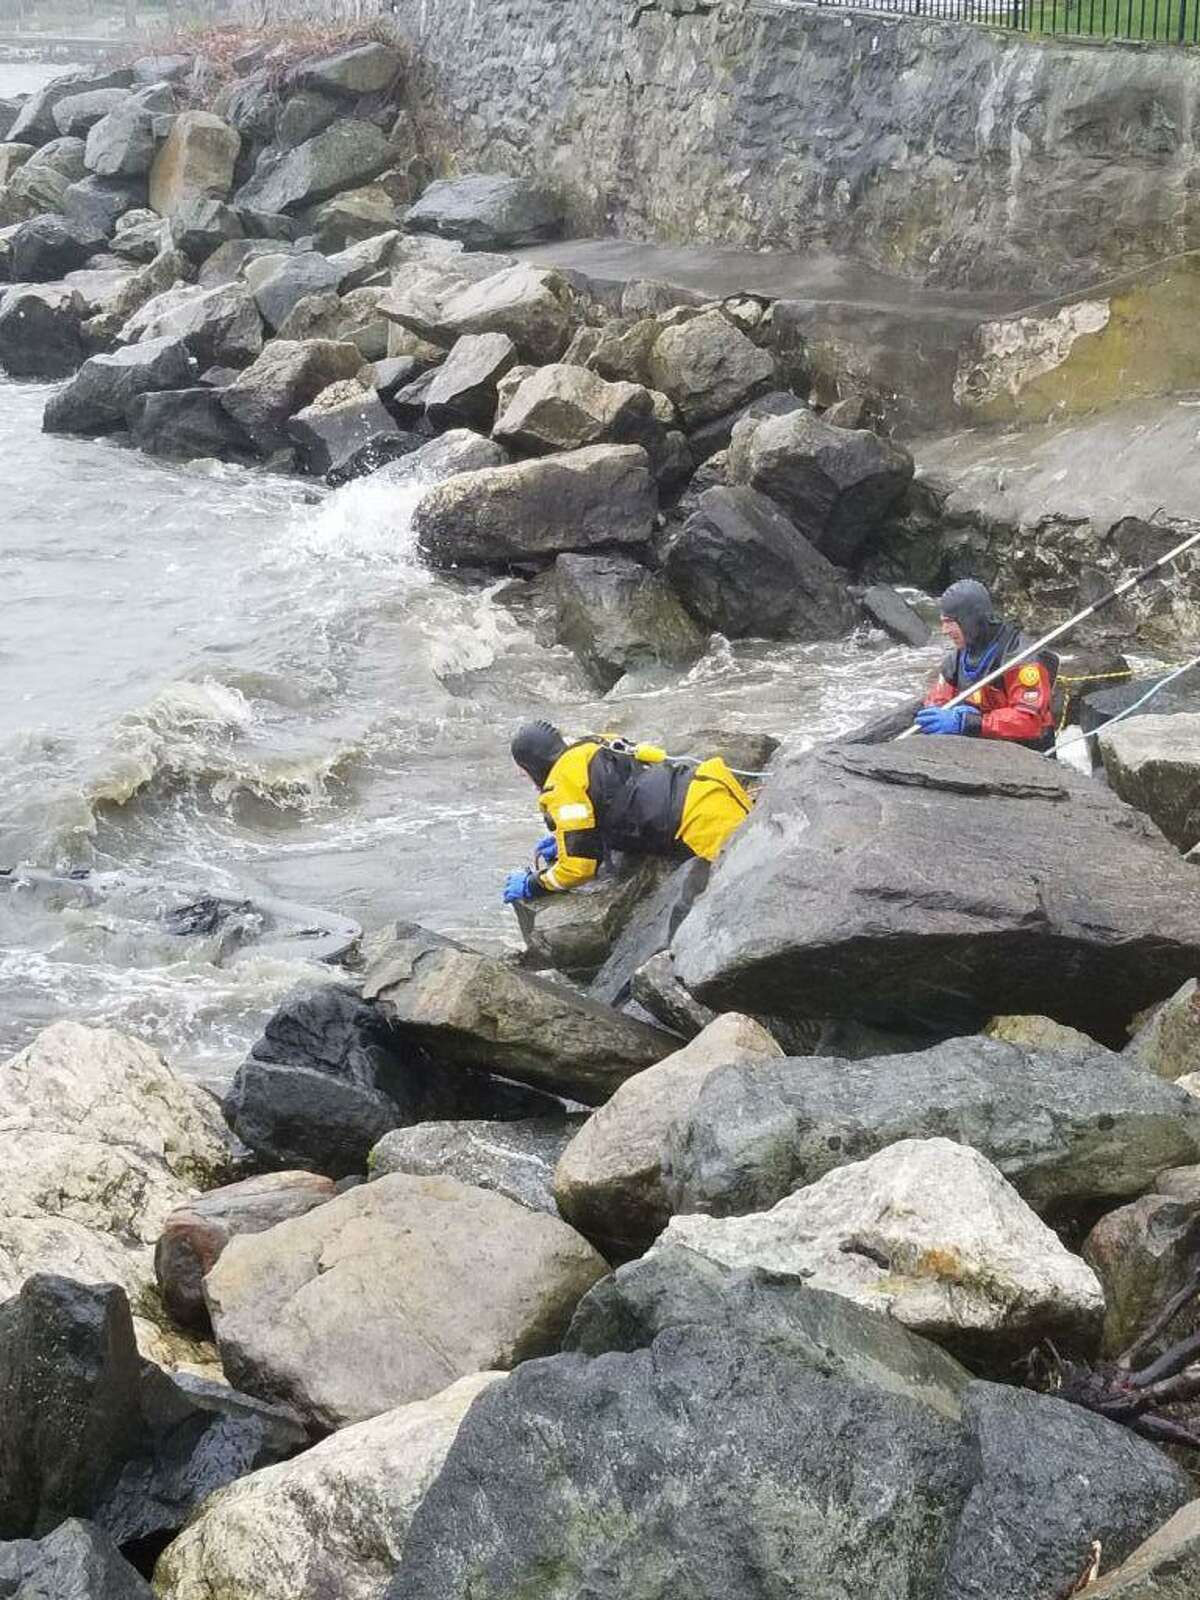 Stamford firefighters respond to the scene of a capsized two-person kayak on Wallacks Point early Sunday afternoon in Stamford.